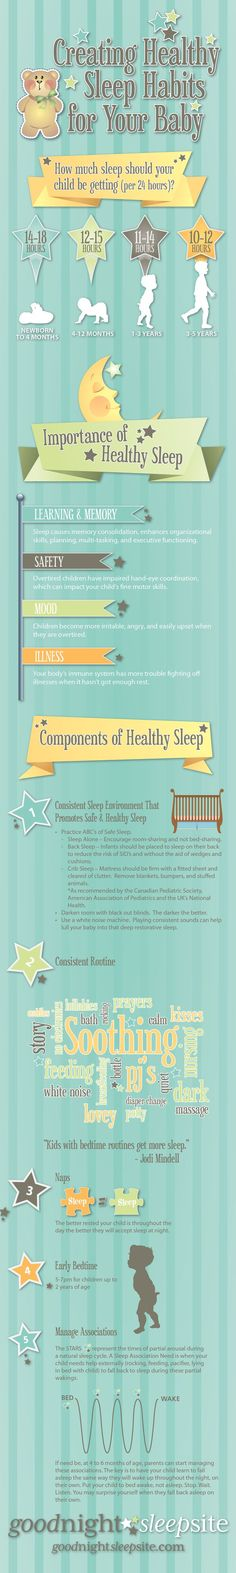 Healthy Sleep Infogram - creating healthy sleep habits from baby to beyond.